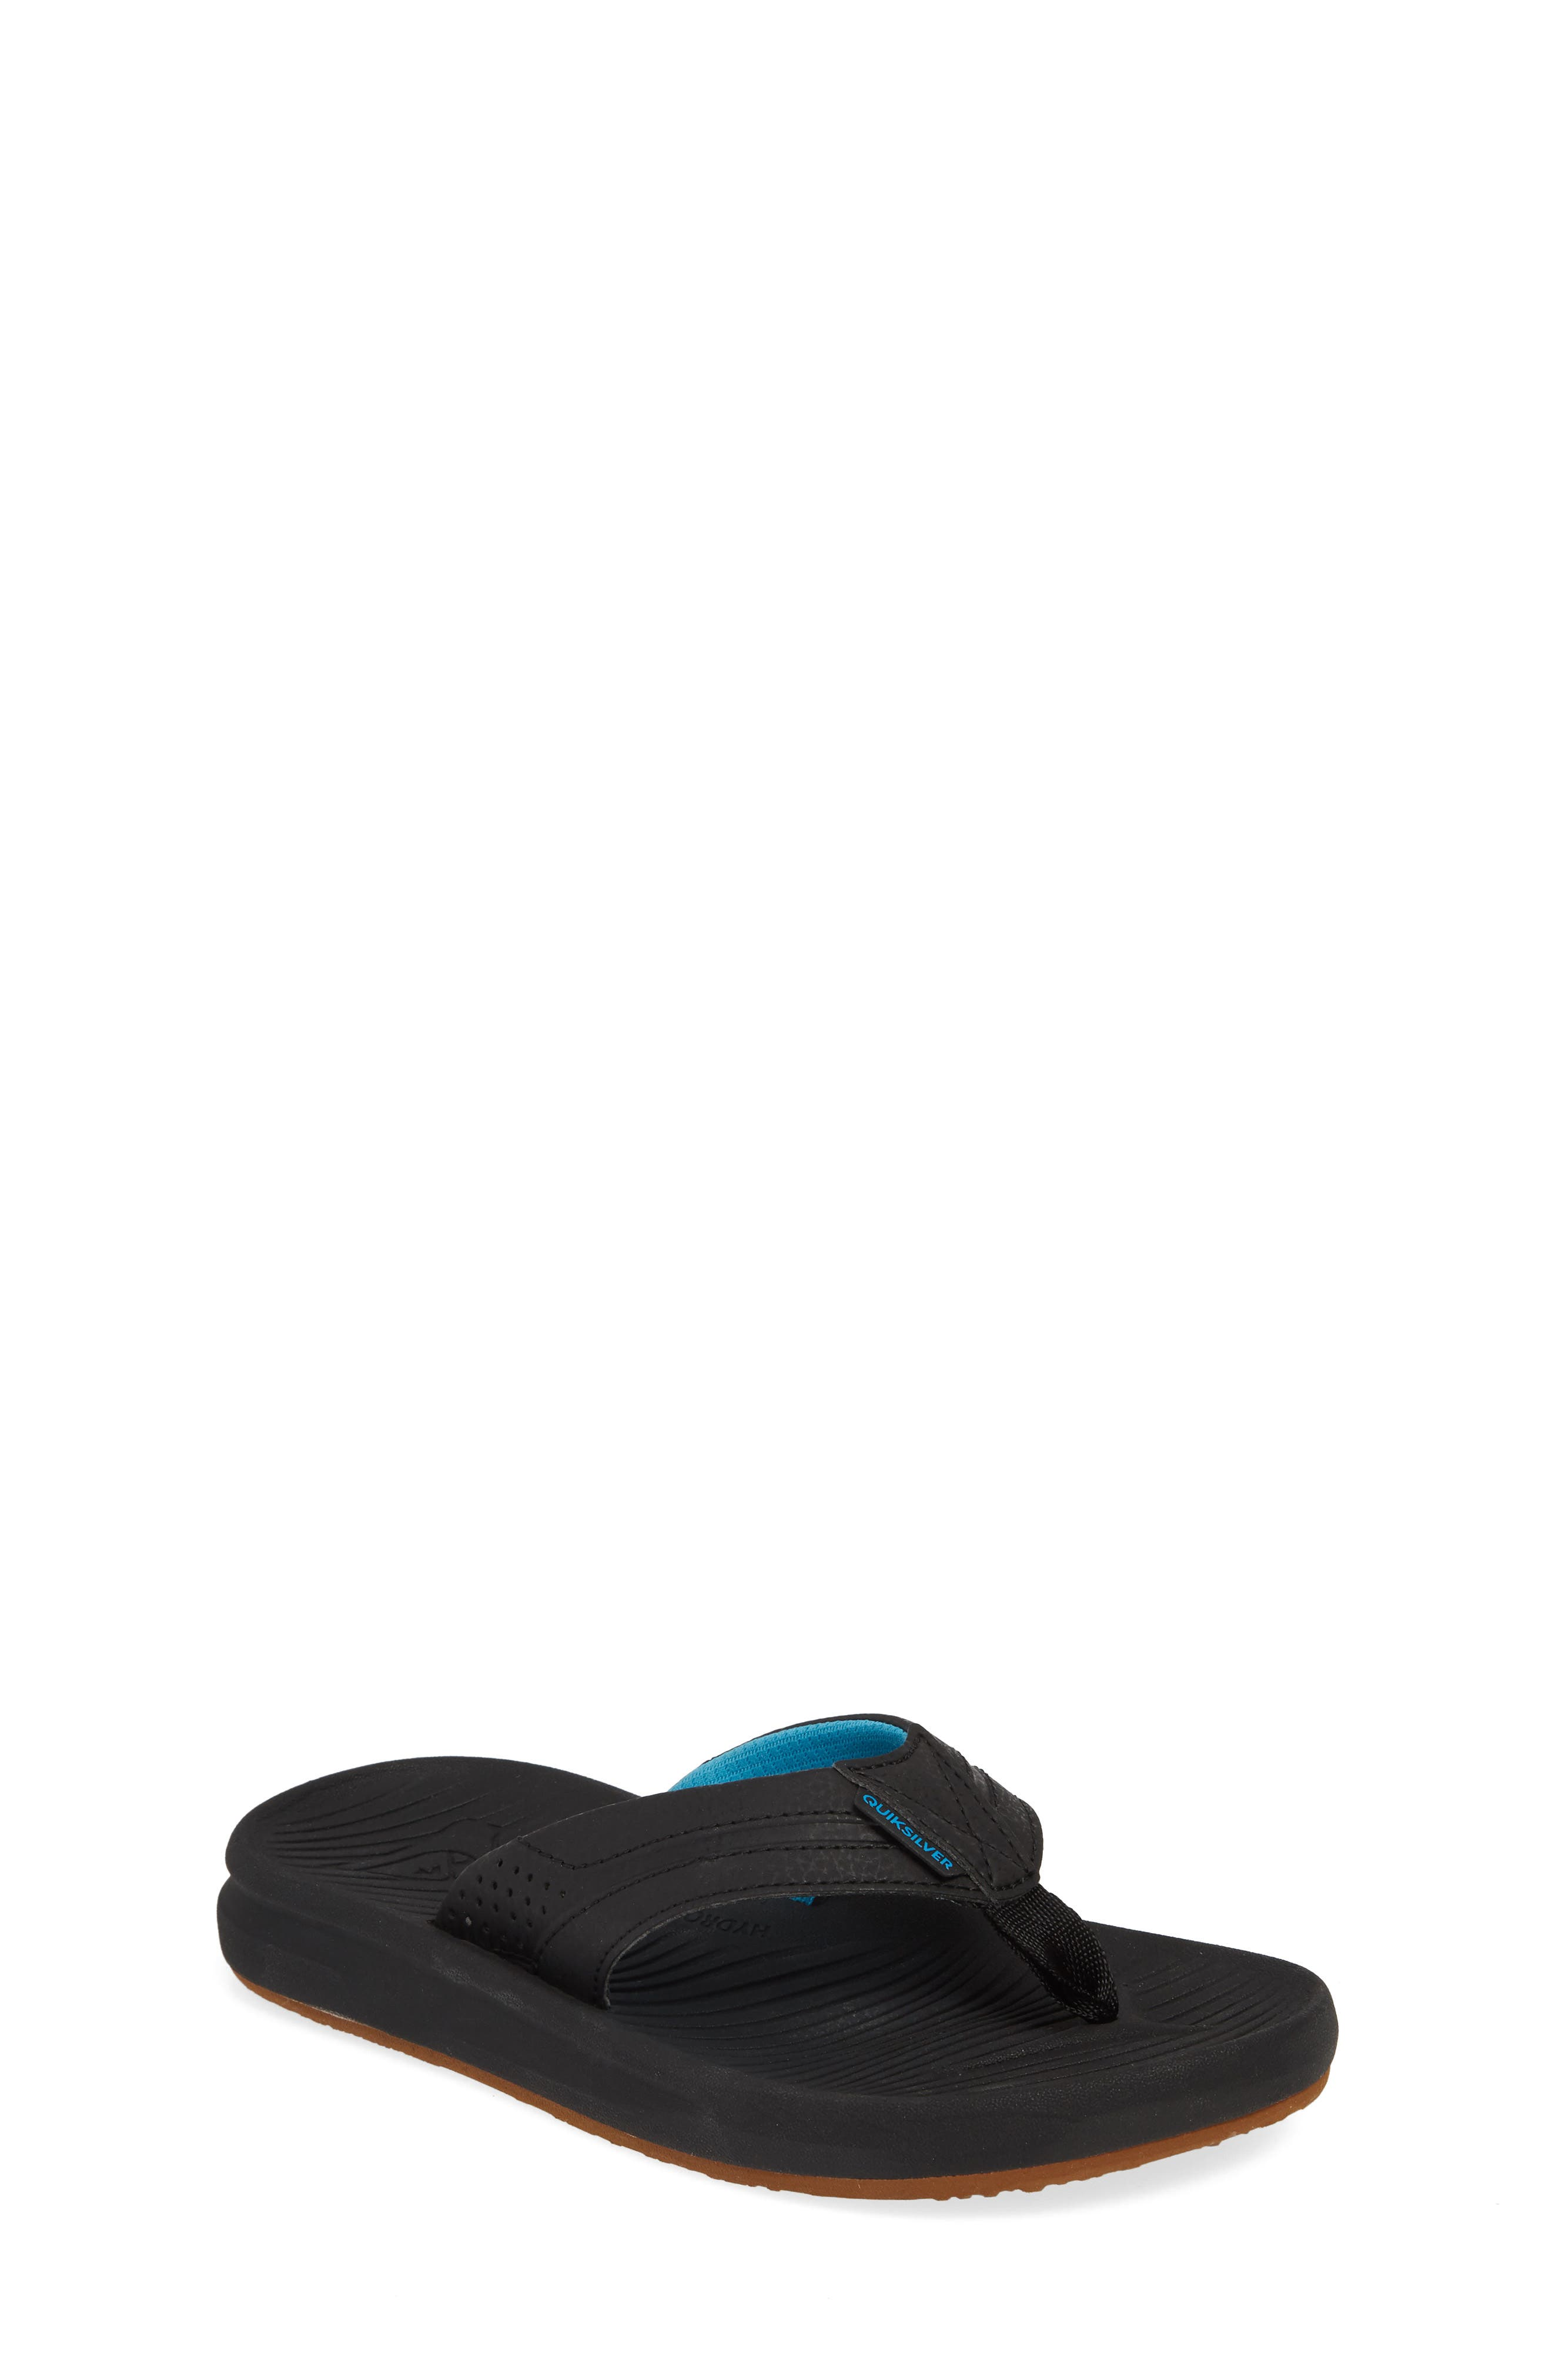 QUIKSILVER, Oasis Flip Flop, Main thumbnail 1, color, BLACK/ BLACK/ BROWN